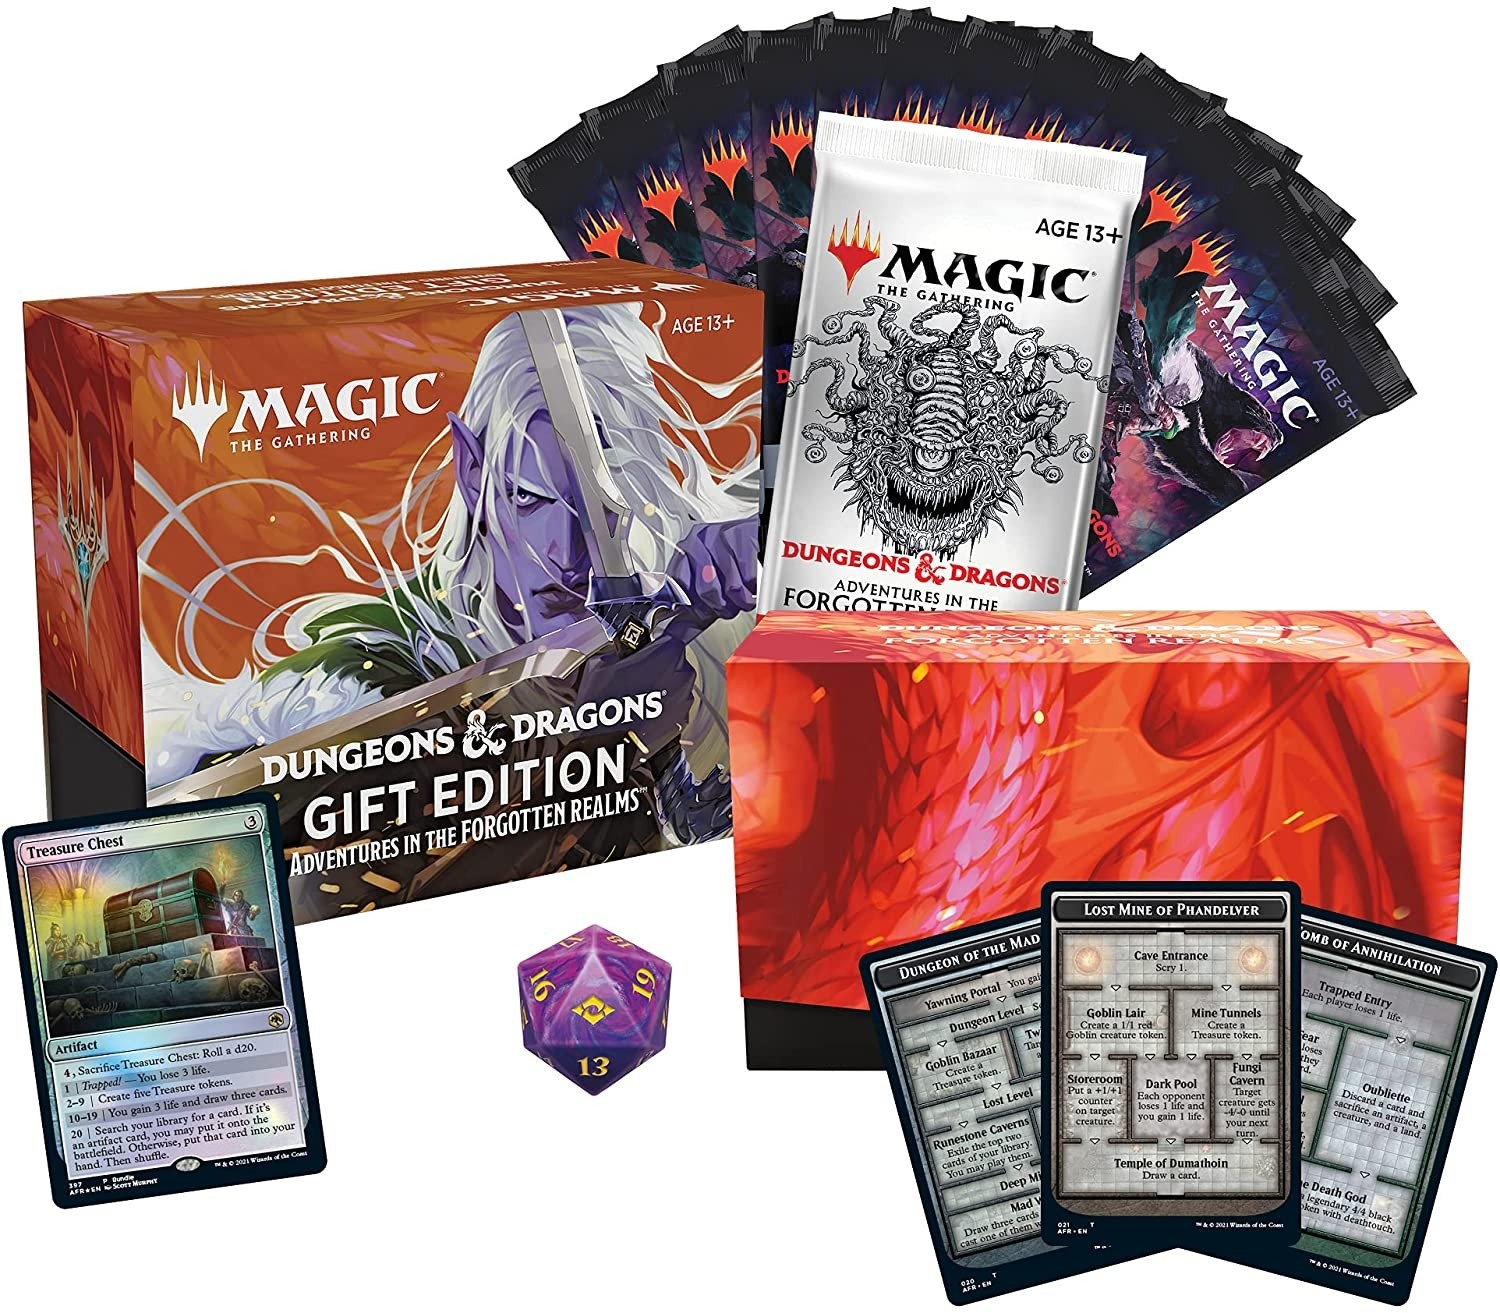 BUNDLE GIFT EDITION - DUNGEONS AND DRAGONS: ADVENTURES IN THE FORGOTTEN REALMS